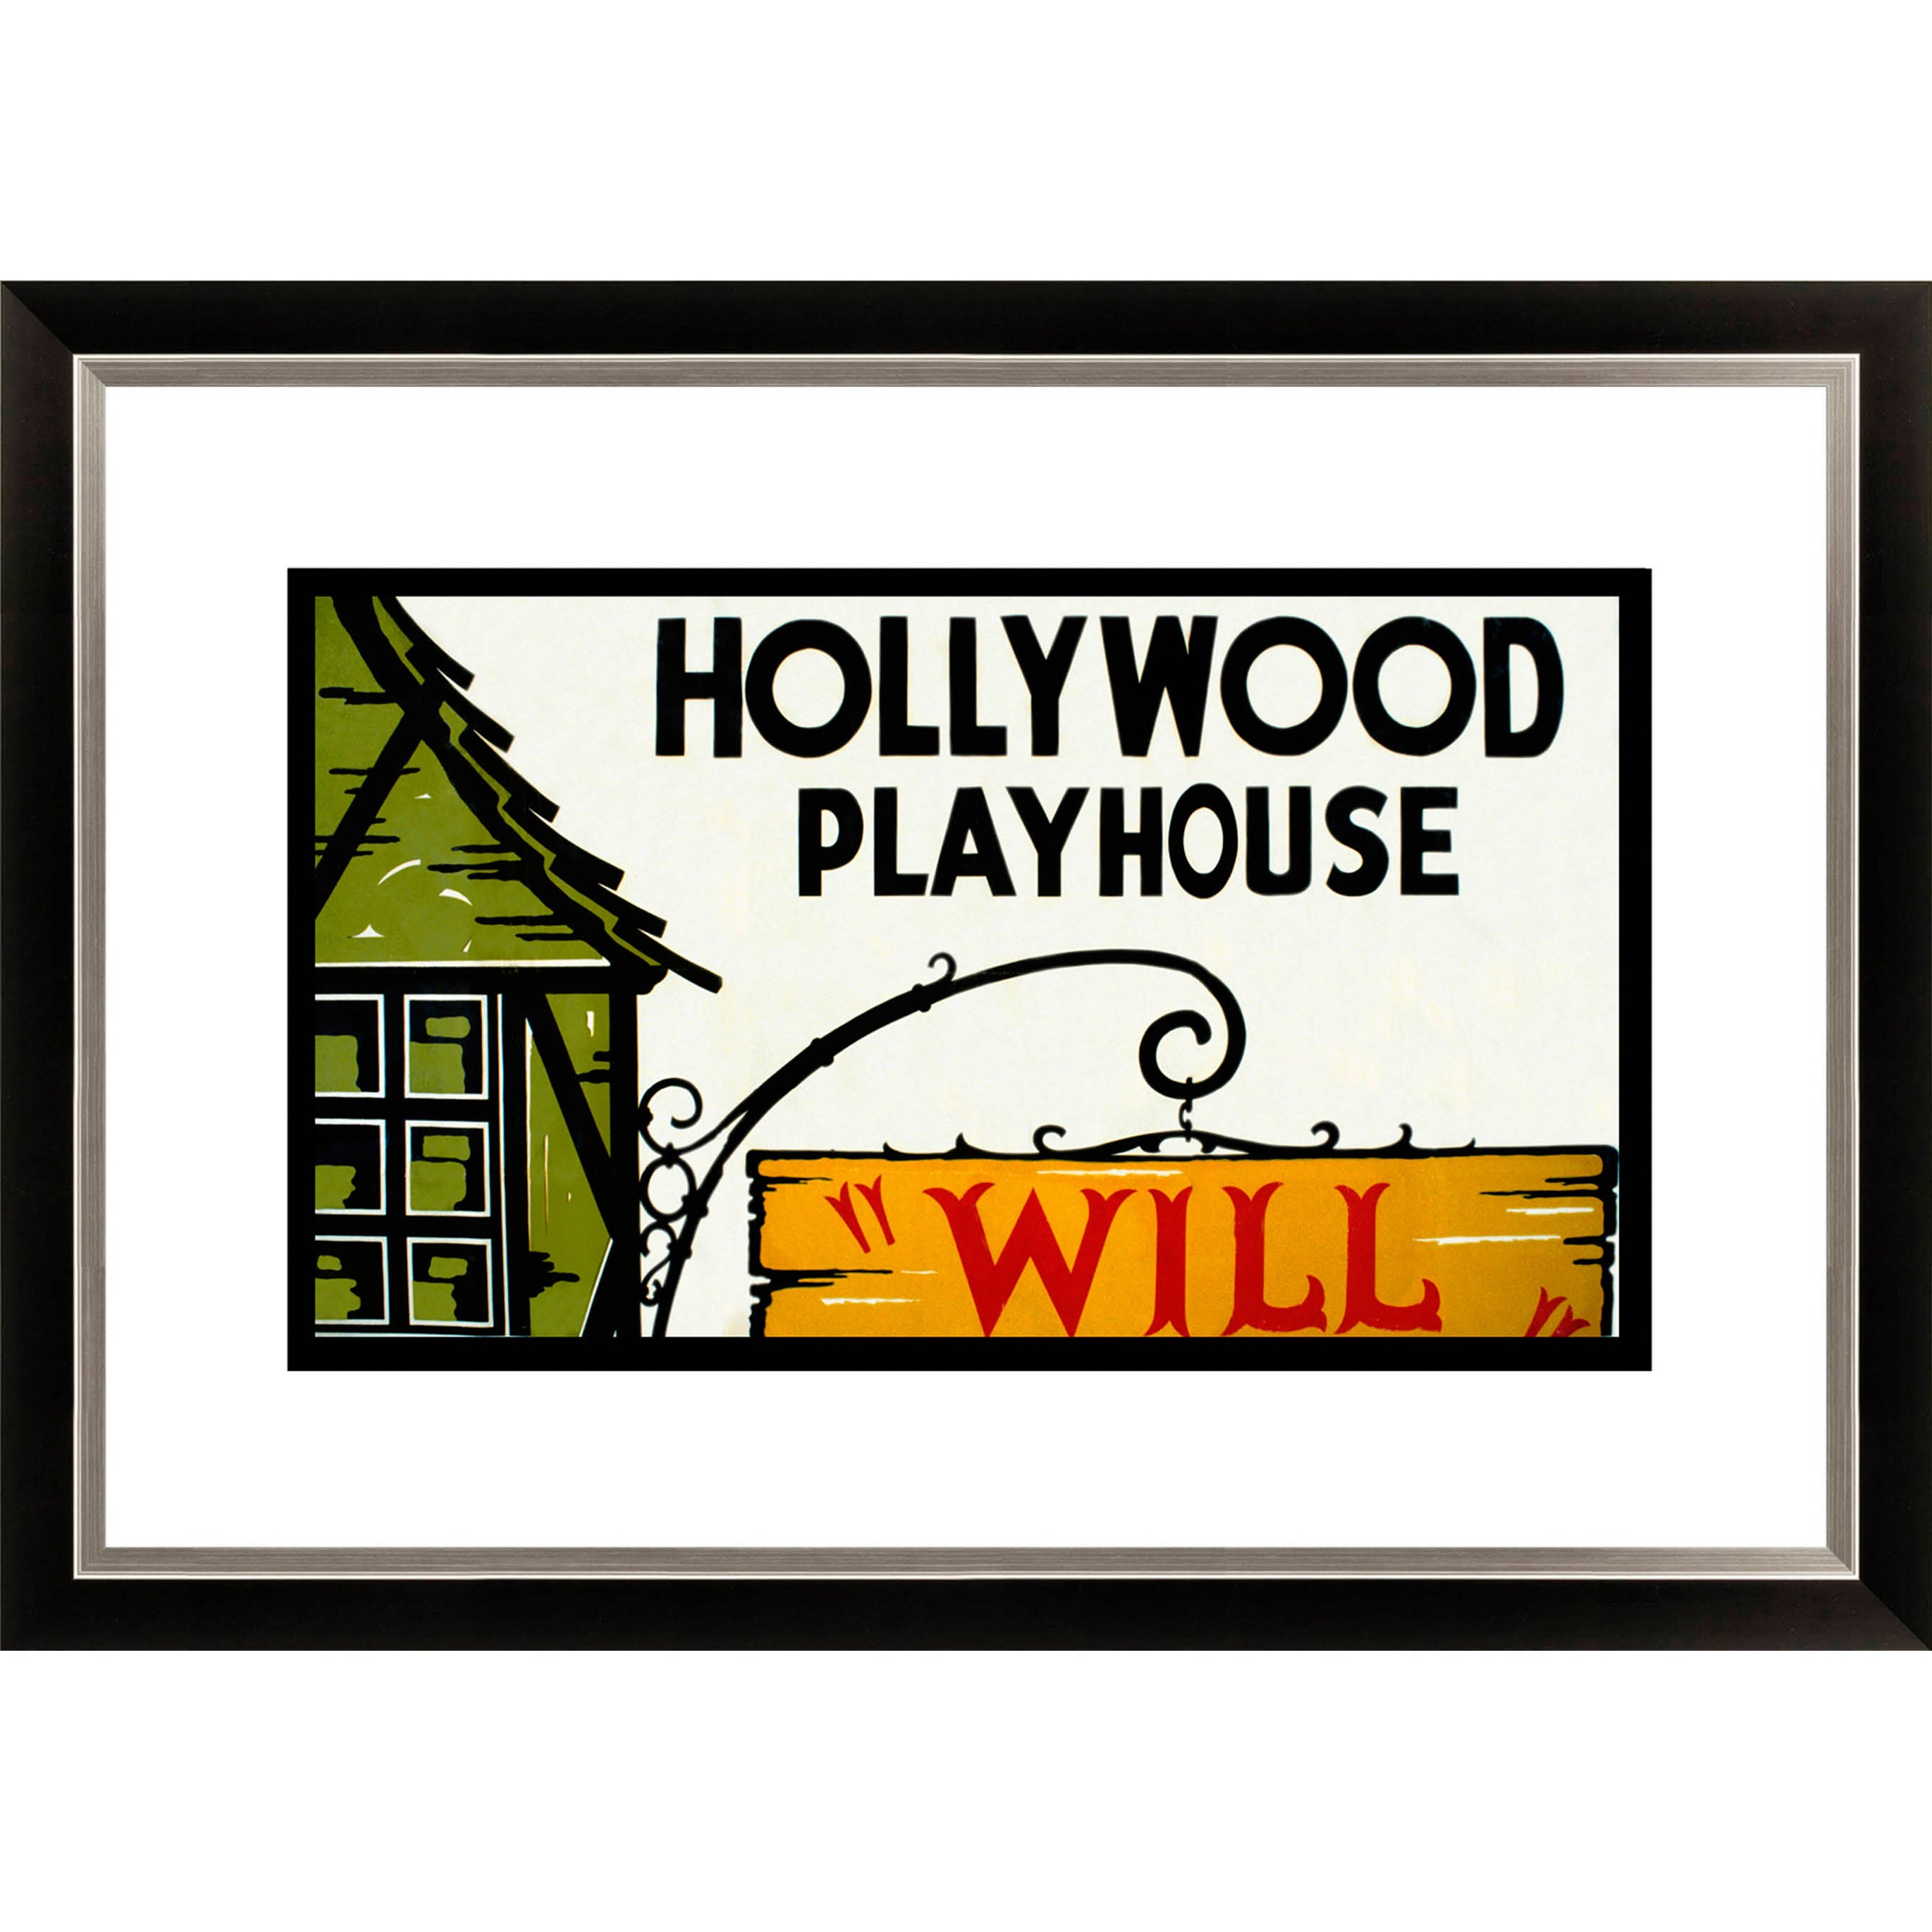 Gallery Direct 'Hollywood Playhouse 'Will Shakespeare' Framed Limited Edition Giclee